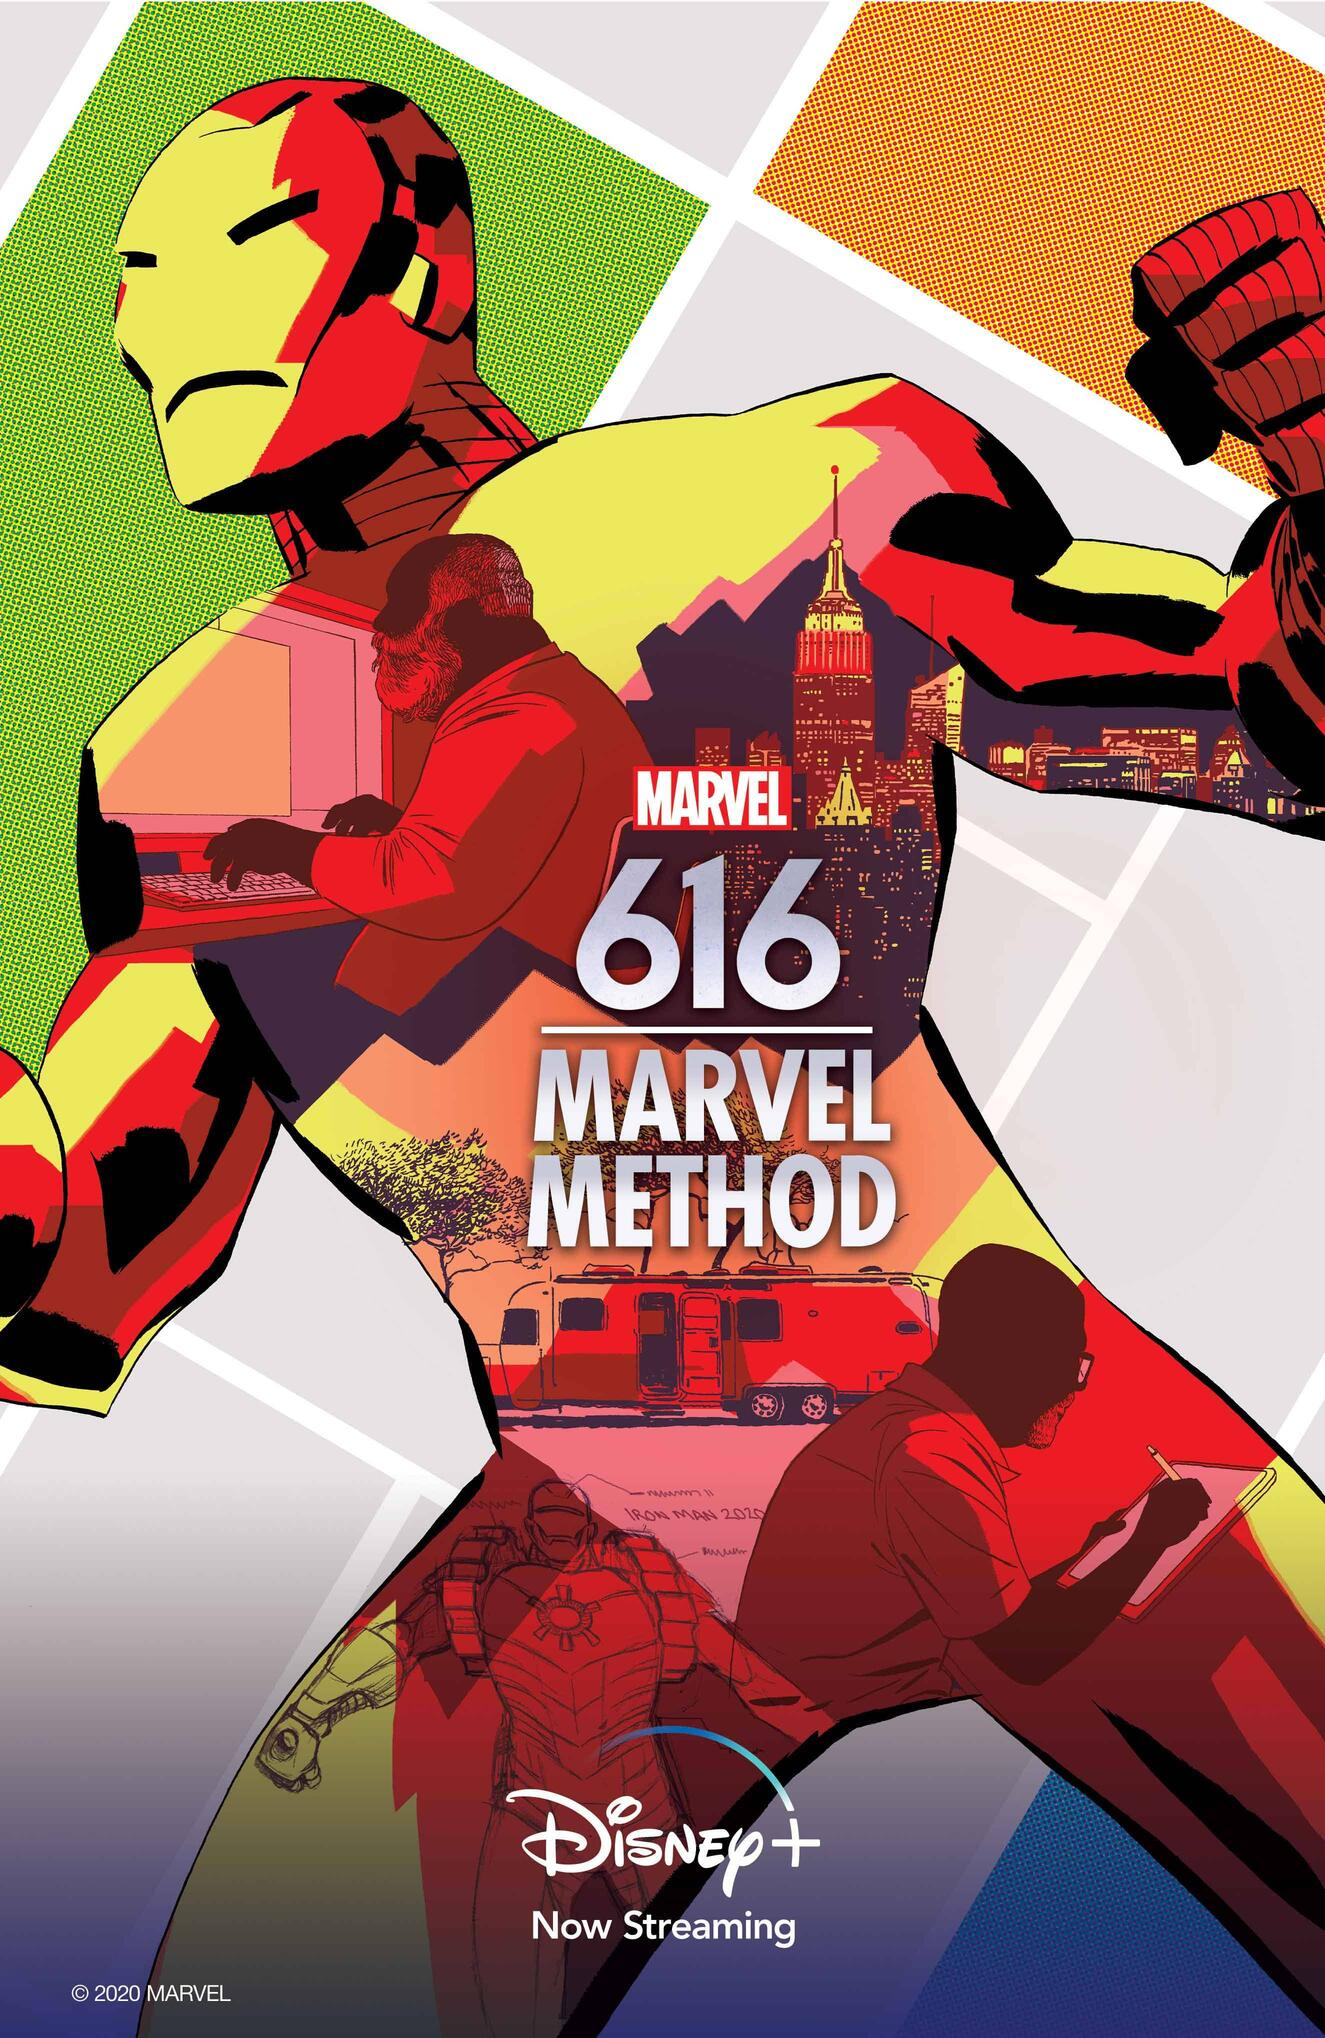 Marvel's 616 Marvel Method